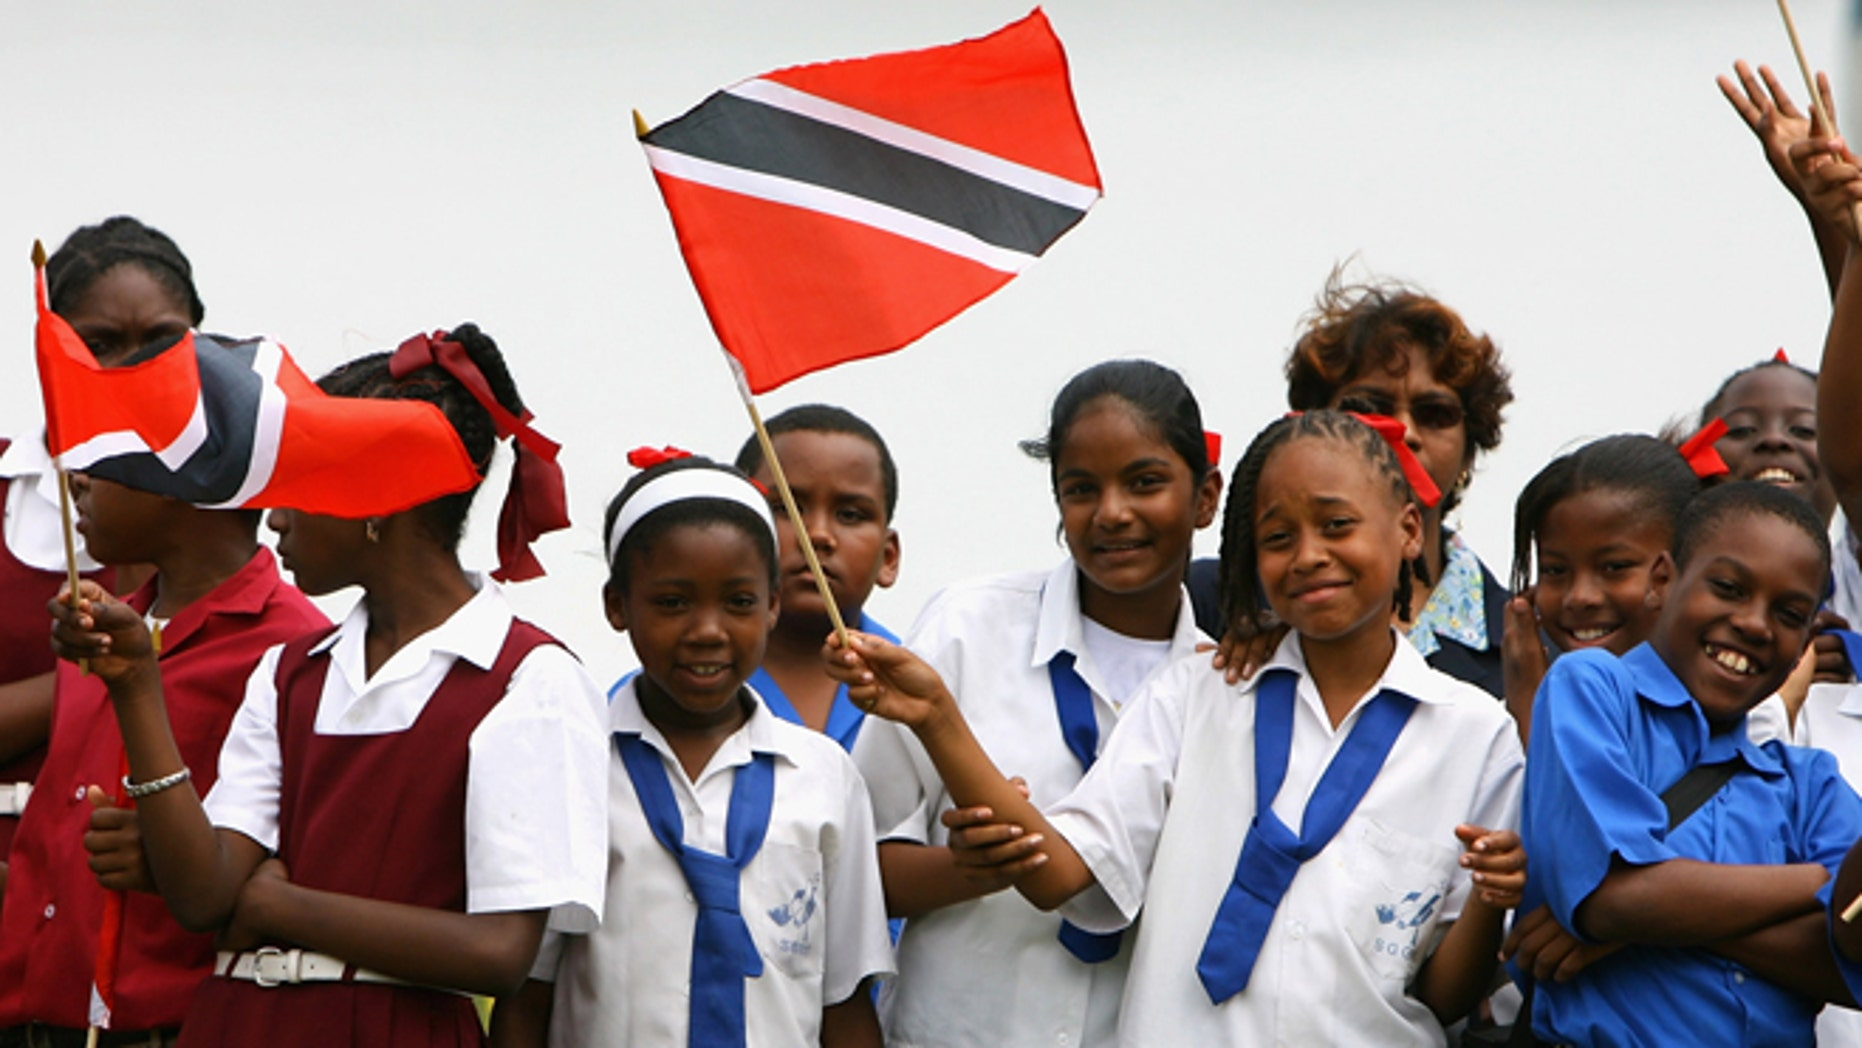 PORT OF SPAIN, TRINIDAD AND TOBAGO - MARCH 05:  Children wave flags at Queen's Cricket ground on the second day of a three day tour of Trinidad and Tobago on March 5, 2008 near Port of Spain, Trinidad. The Royal Couple have arrived in Trinidad on the first leg of a ten day tour of the Caribbean. Sir Donald Gosling's Yacht Leander will transport the couple from Island to Island, then to their final destination, Jamaica.  (Photo by Chris Jackson/Getty Images)